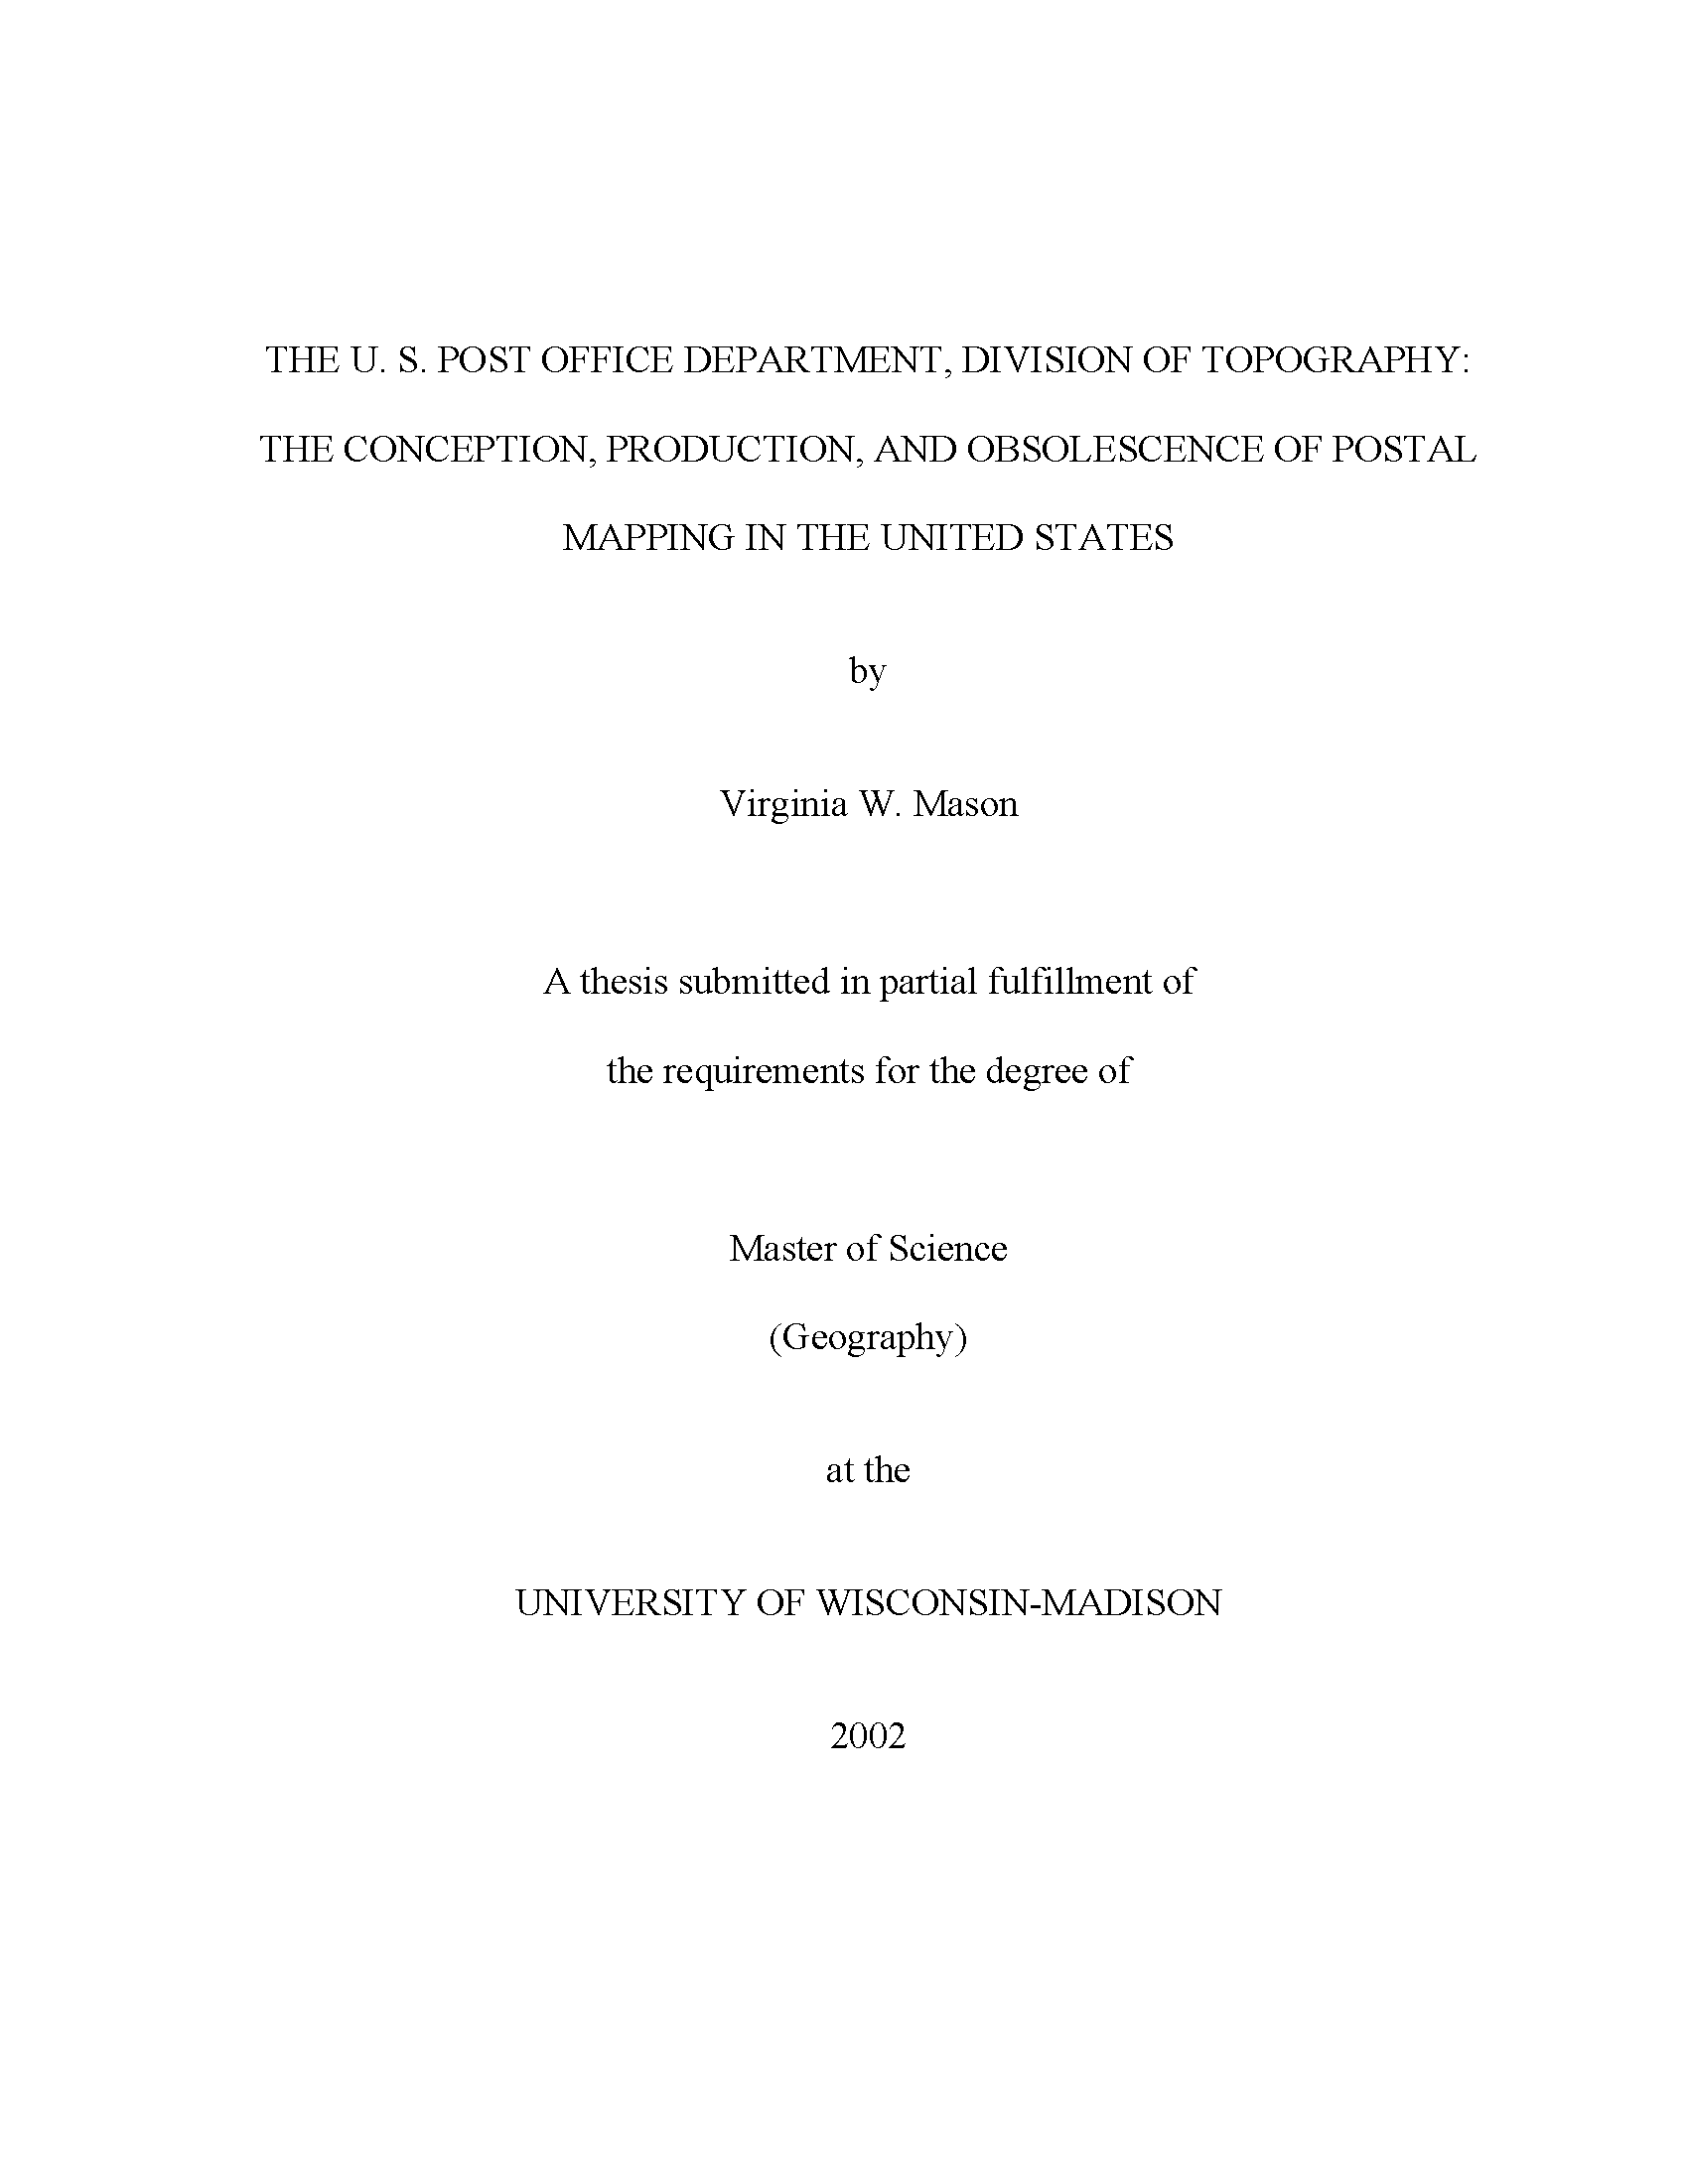 Thesis Final_Page_001.png